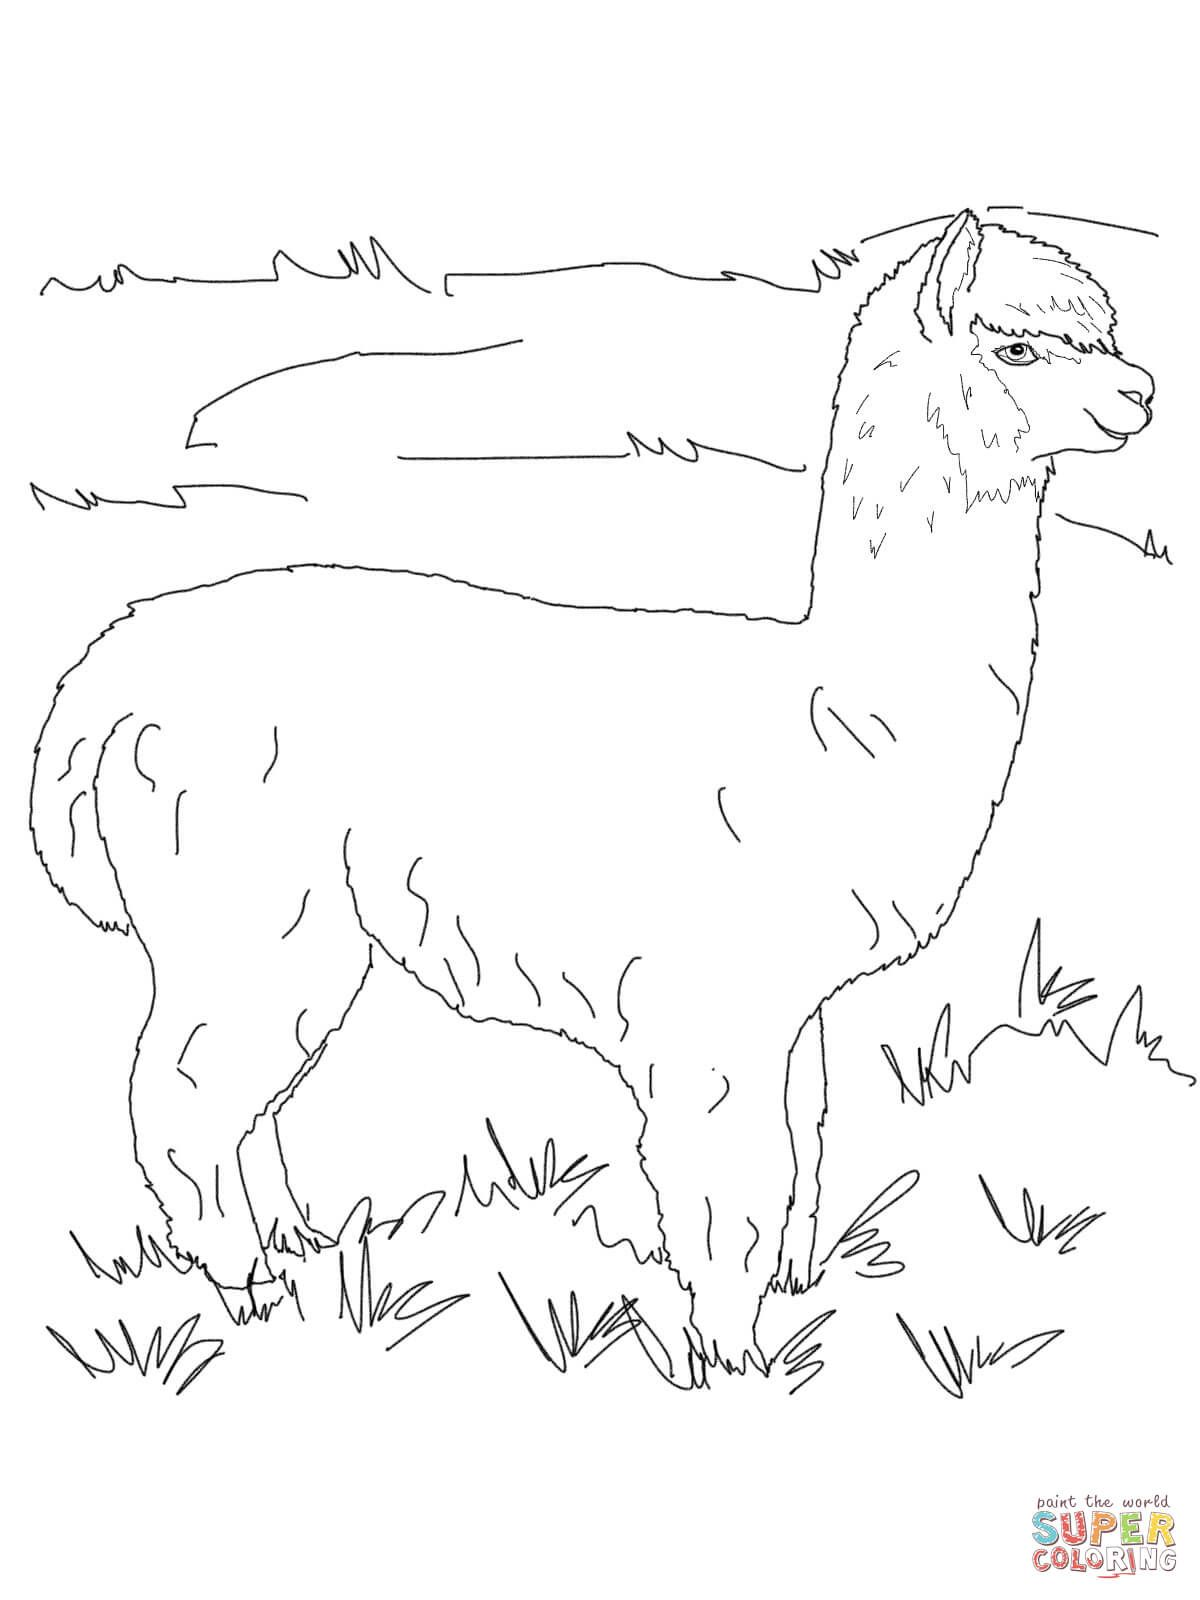 Alpaca coloring pages | Free Coloring Pages | Alpacas | Pinterest ...